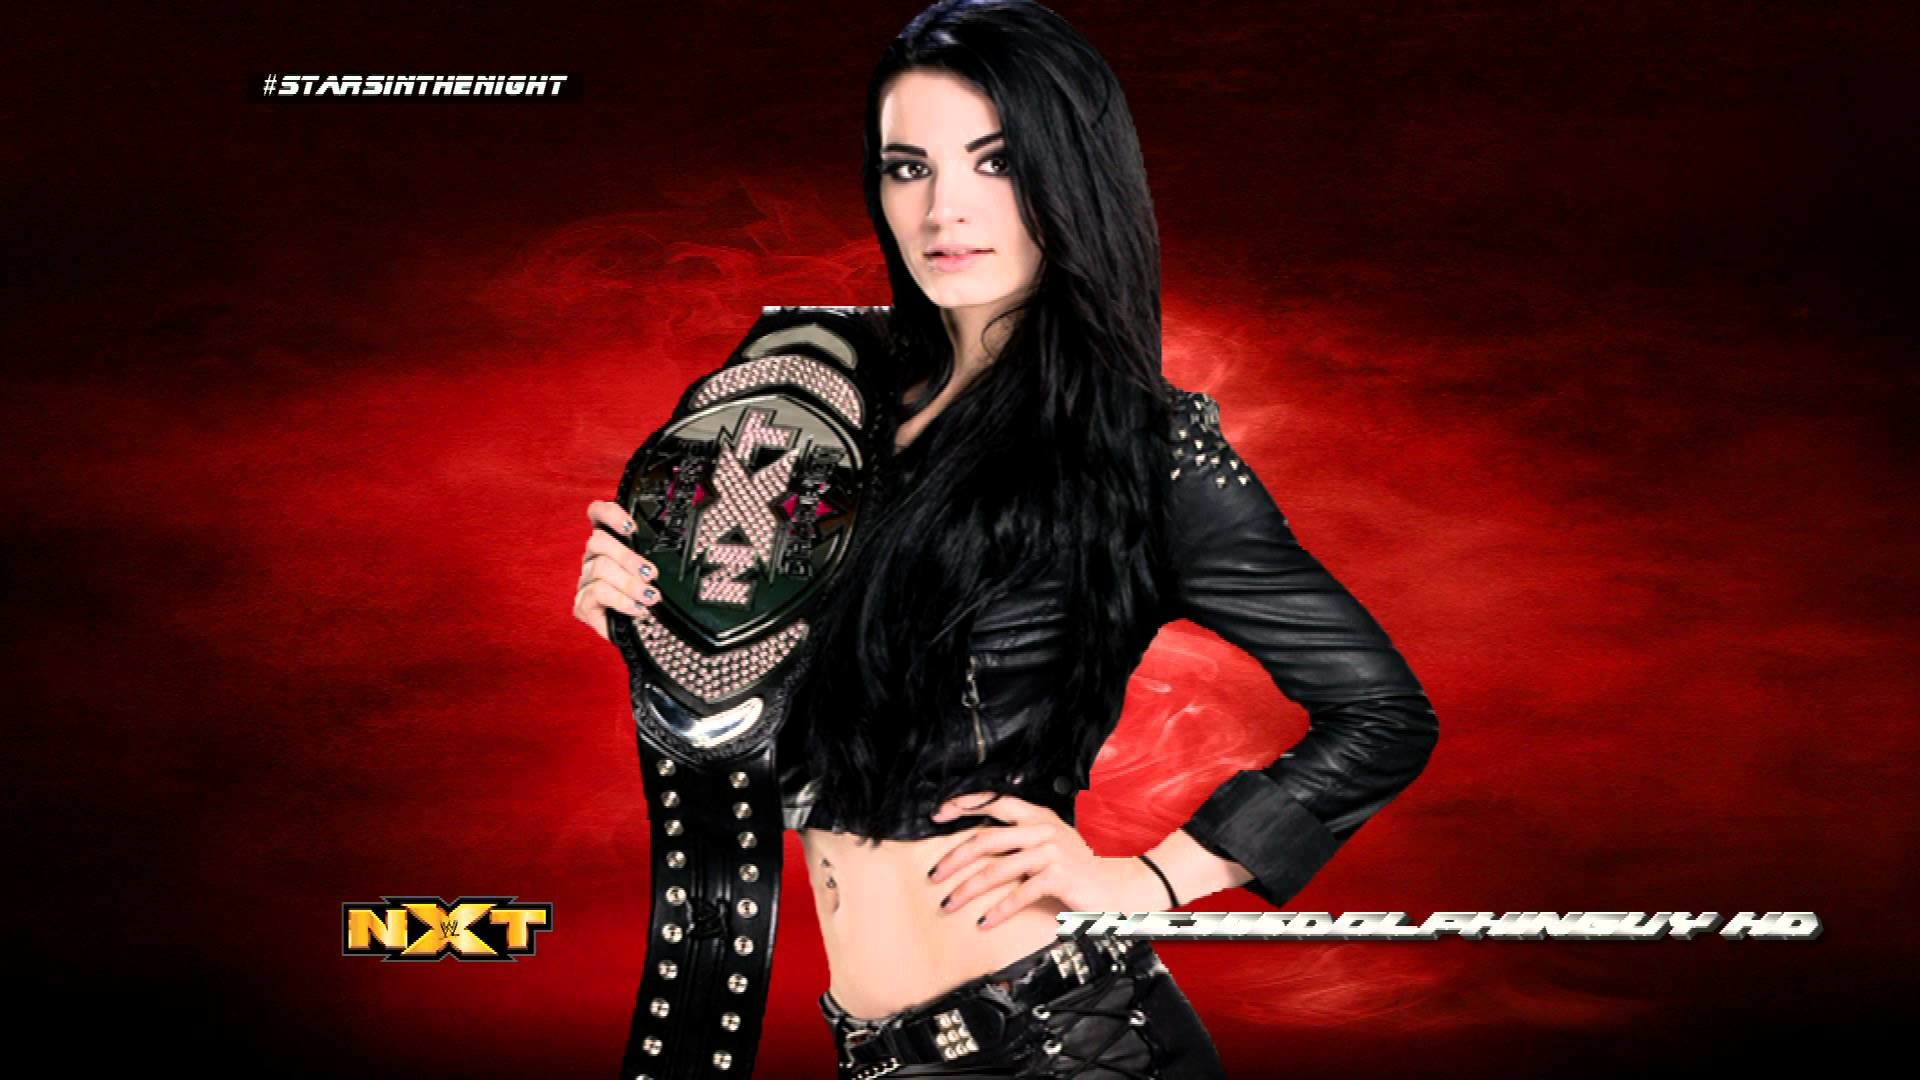 1920x1080 #WWE: Paige 2nd Theme - Stars in the Night (HQ + Arena Effects) - YouTube